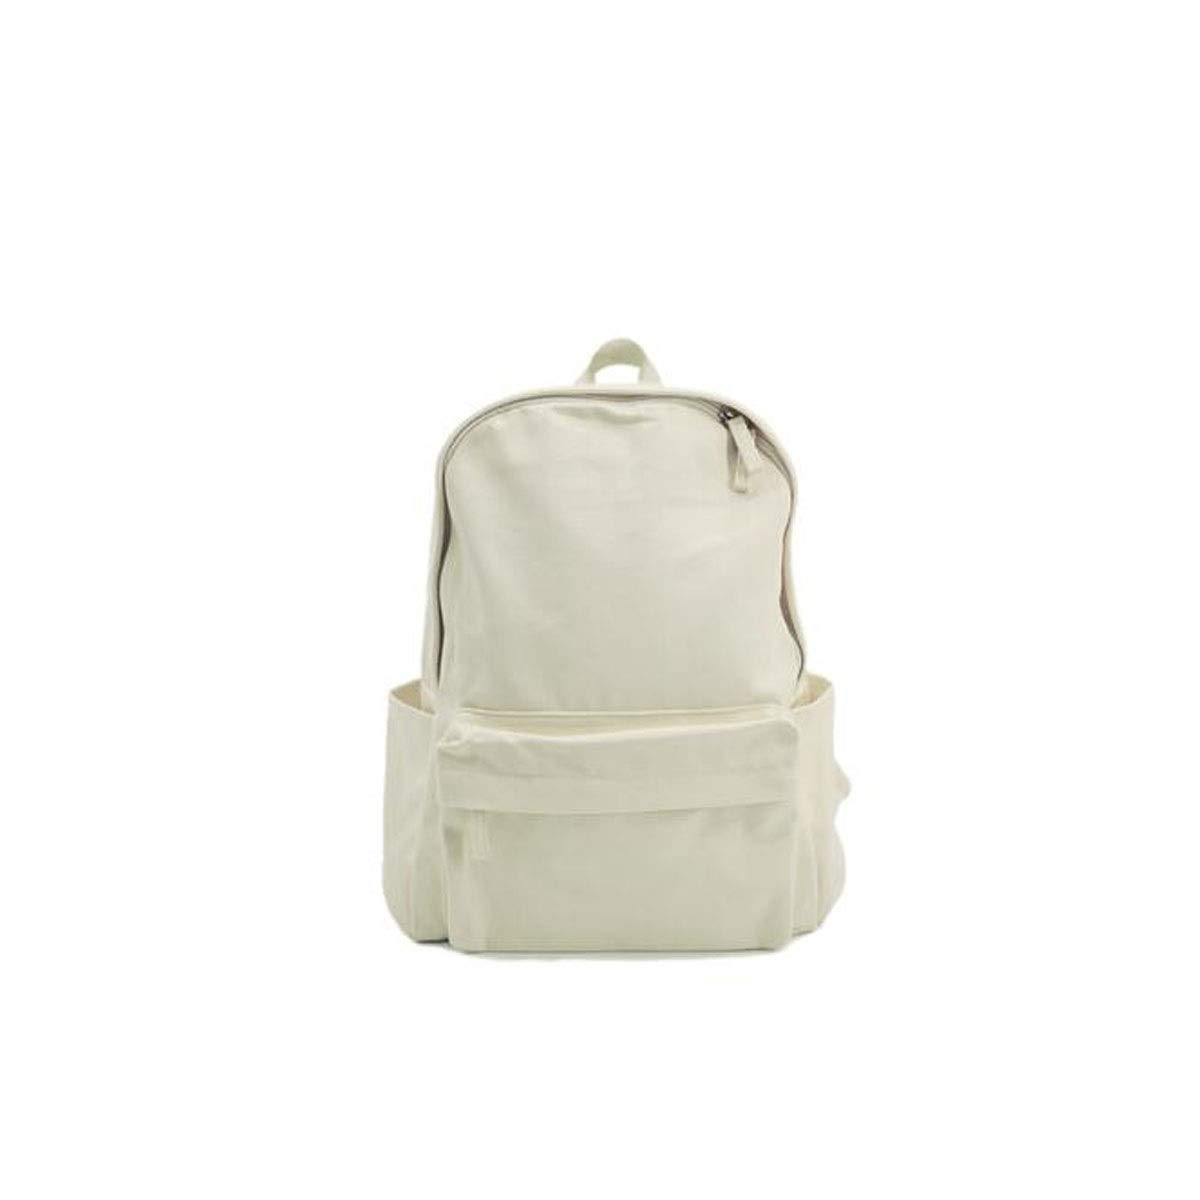 Chenjinxiang01 Solid Color Backpack Bag Color : White Womens Fashion Oxford Folding Backpack red, Blue, Black, White, Green, Gray